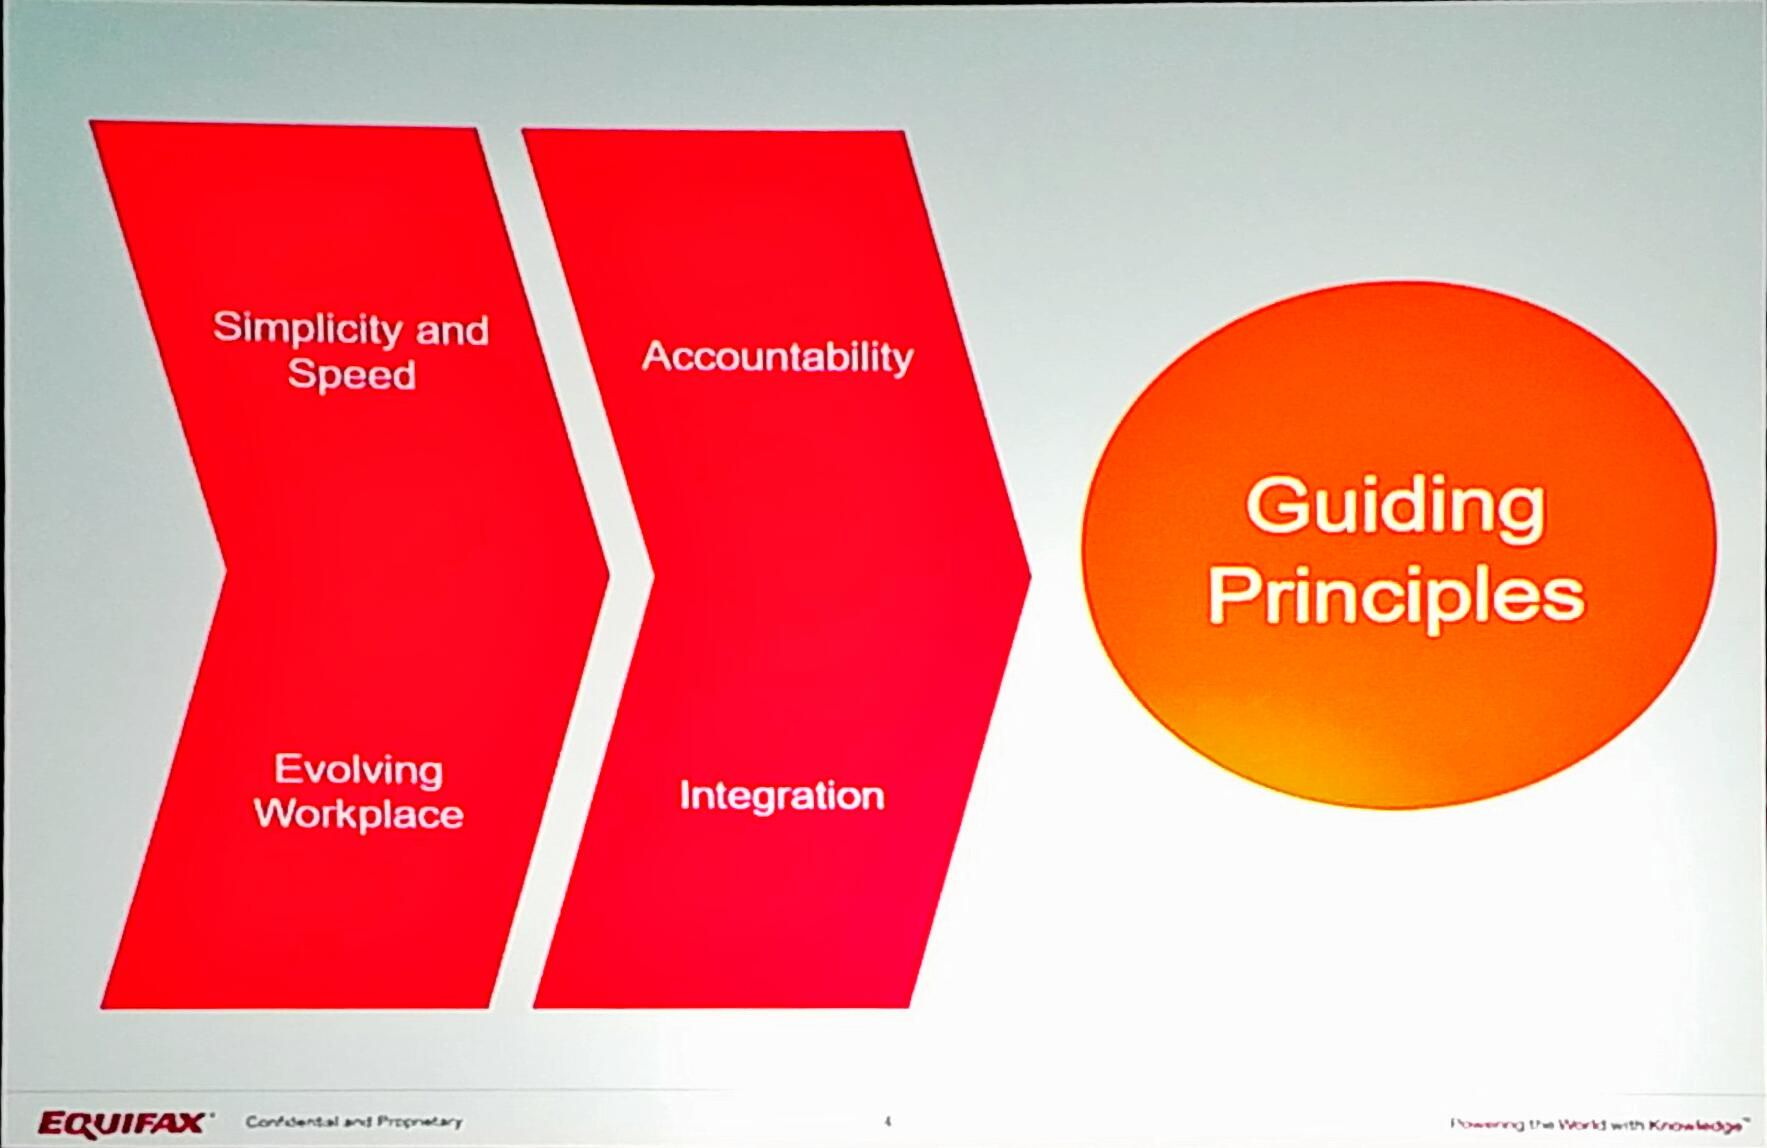 4 guiding principles @EquifaxInsights  - Simplicity and Speed - Evolve Workspaces  - Accountability  - Integration  #EFXForum17 https://t.co/Rj7tItuFxF